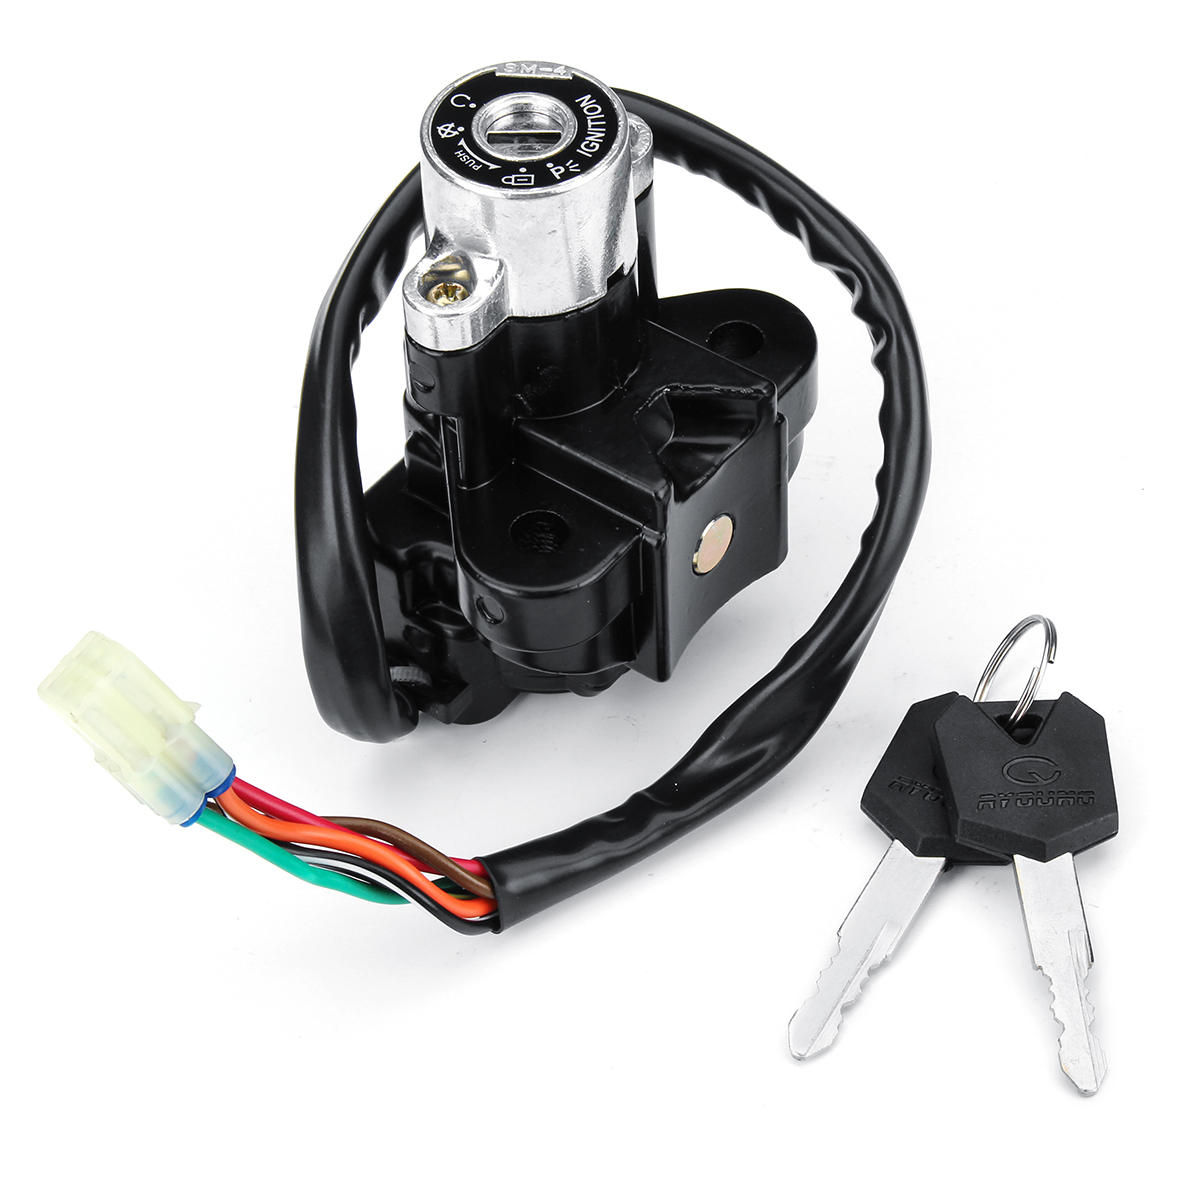 Gz250 Ignition Wiring Great Design Of Diagram Ford Harness Starter Switch Lock With Keys For Suzuki Gz125 Gsf600 Rh Banggood Com Chevy